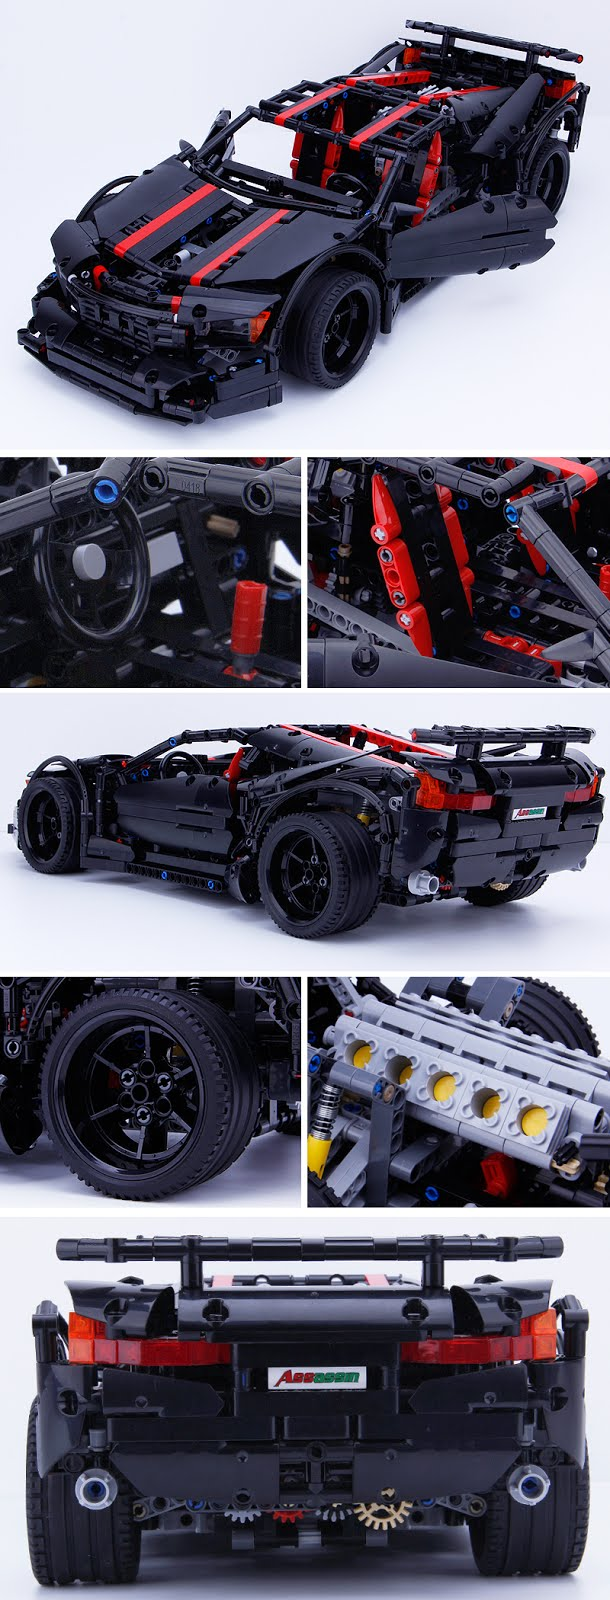 XB-07003 model overview